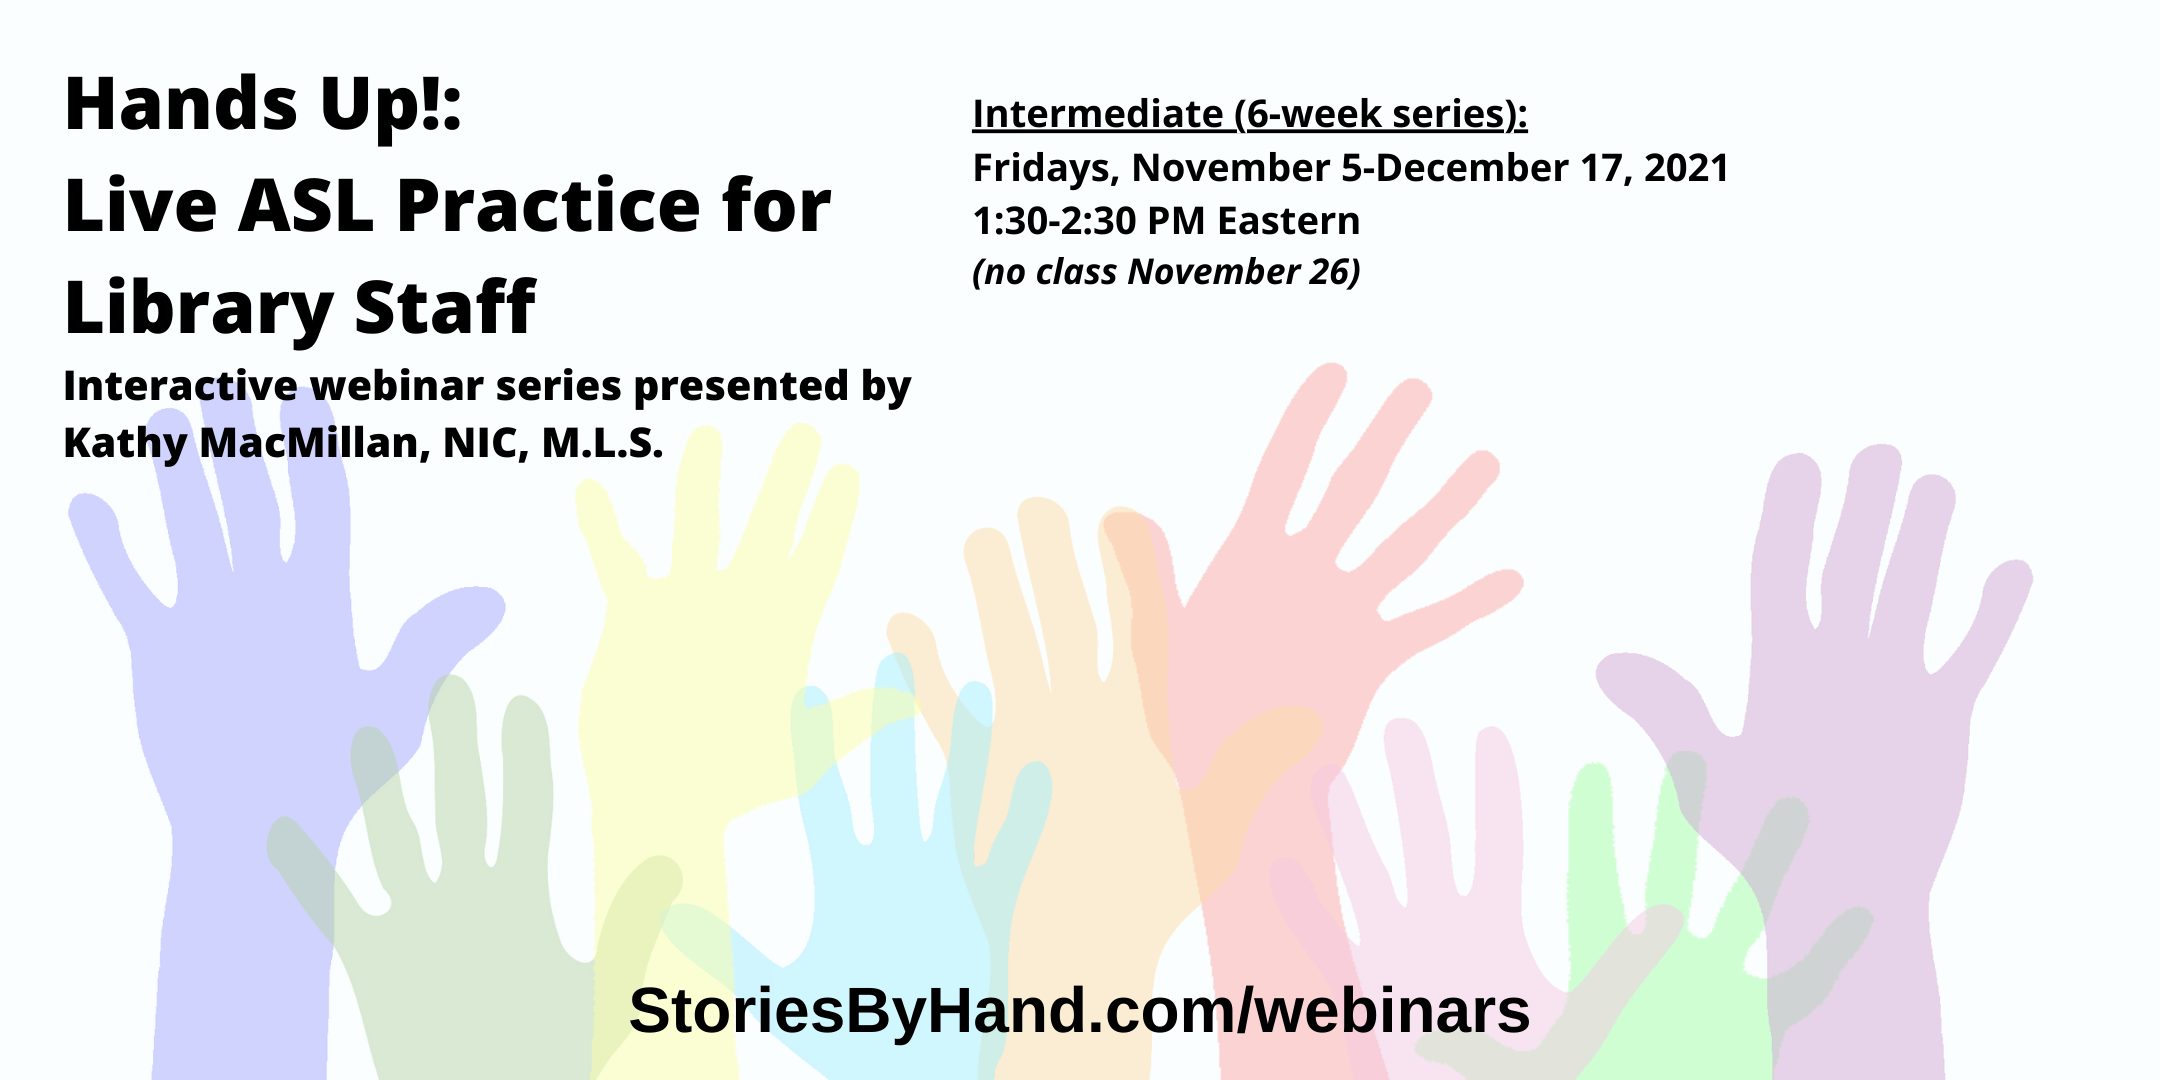 Hands Up!: Live ASL Practice for Library Staff | Interactive webinar series presented by Kathy MacMillan, NIC, M.L.S. | Fridays, November 5-December 17 from 1:30-2:30 PM Eastern/12:30-1:30 PM Central/11:30AM-12:30 PM Mountain/10:30-11:30 AM Pacific - NO CLASS ON NOVEMBER 26 | StoriesByHand.com/webinars | Words appear over a drawing of upraised hands in bright pastel colors against a white background.